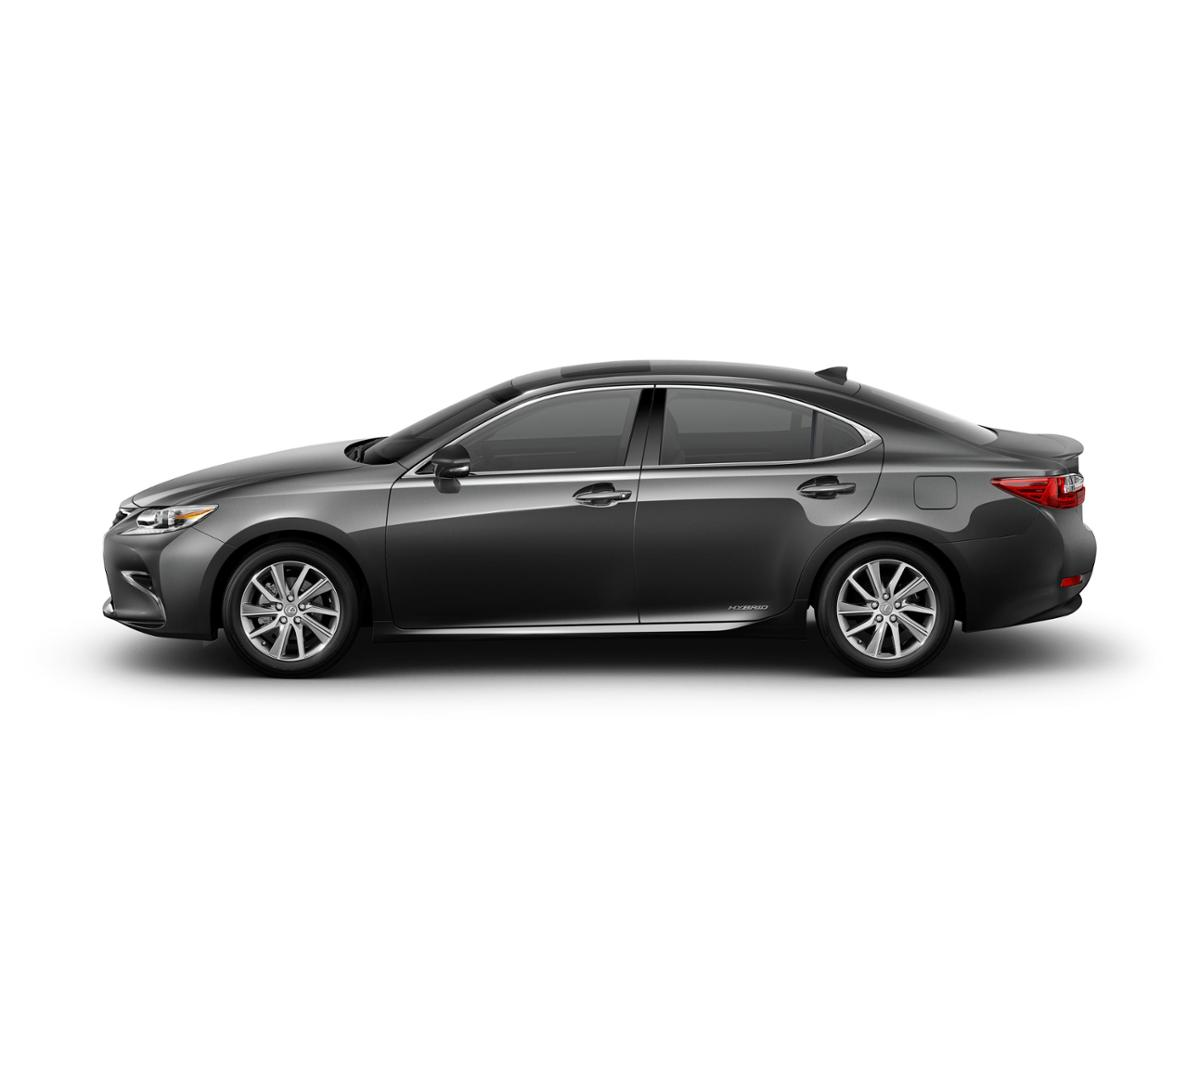 2018 Lexus ES 300h Vehicle Photo in El Monte, CA 91731